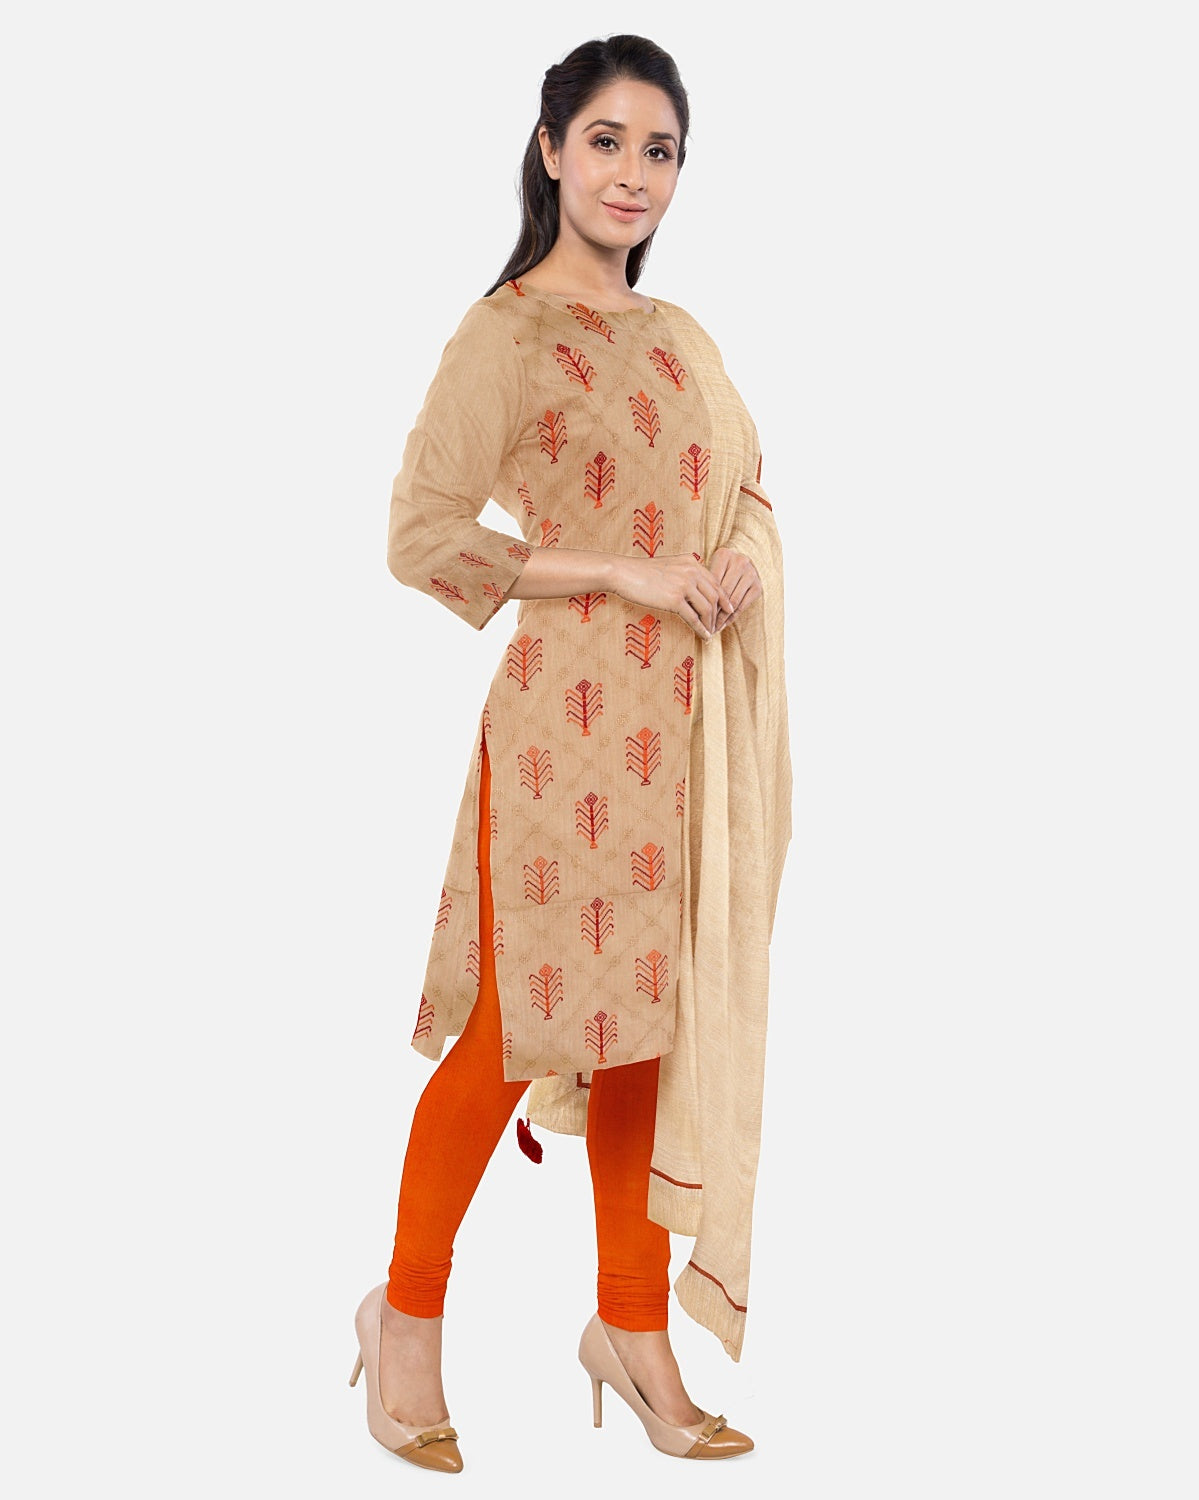 Gold Beige Embroidered Raw Silk Suit Fabric Set